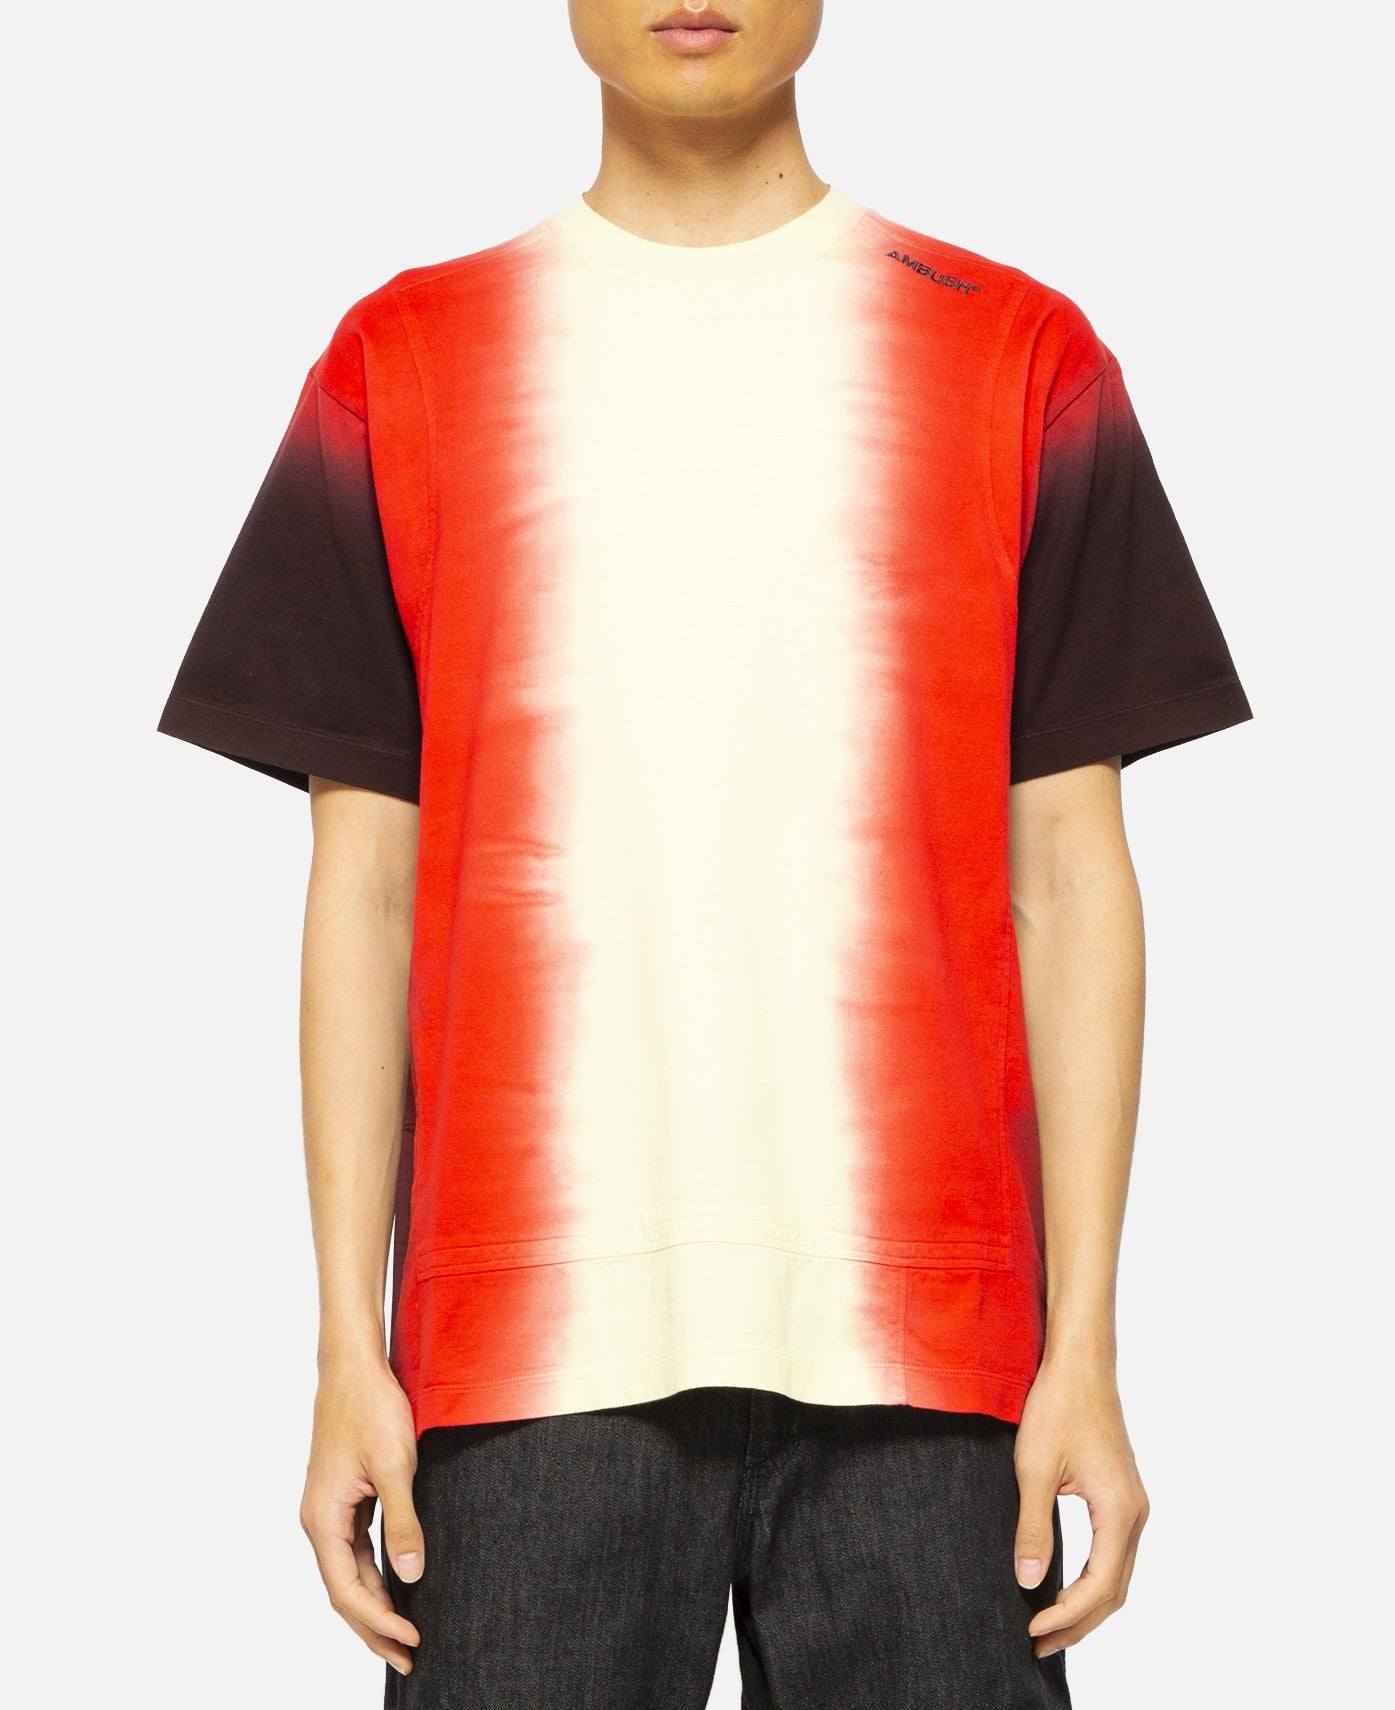 Tie Dye Paneled T-Shirt (Orange)